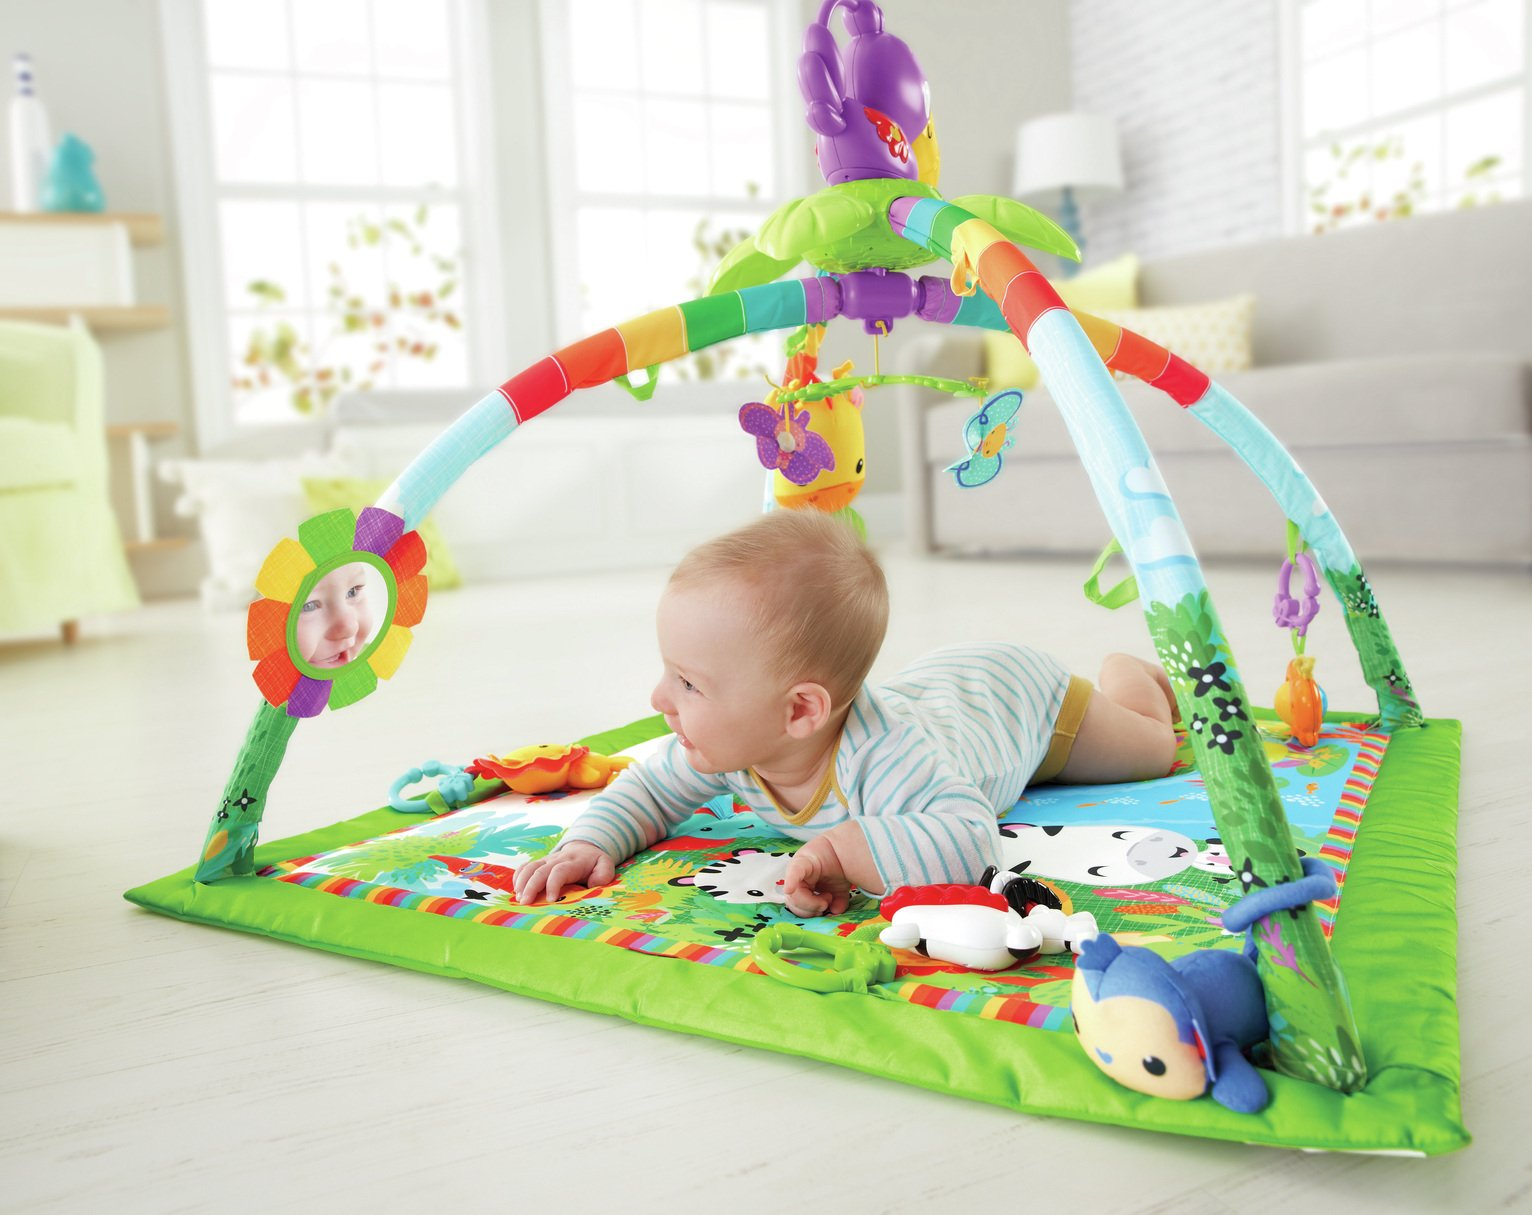 Fisher-Price - Rainforest Music and - Lights Deluxe Gym from Fisher-Price